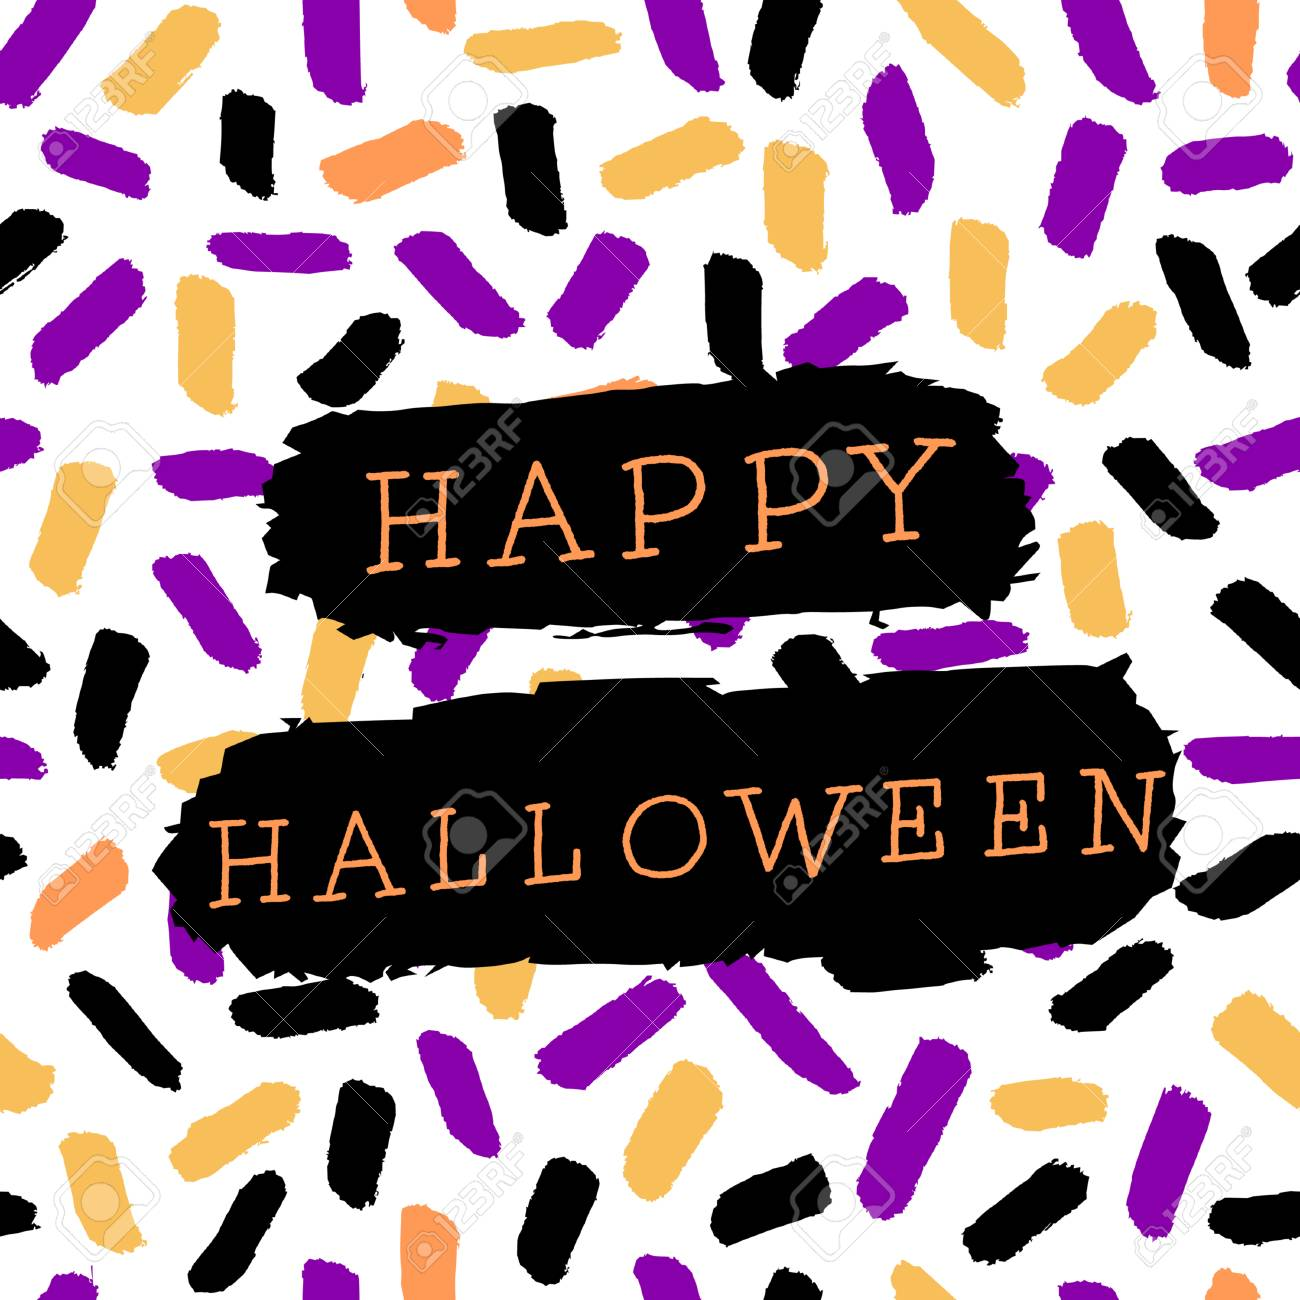 abstract halloween design with text on colorful memphis style pattern background poster brochure or